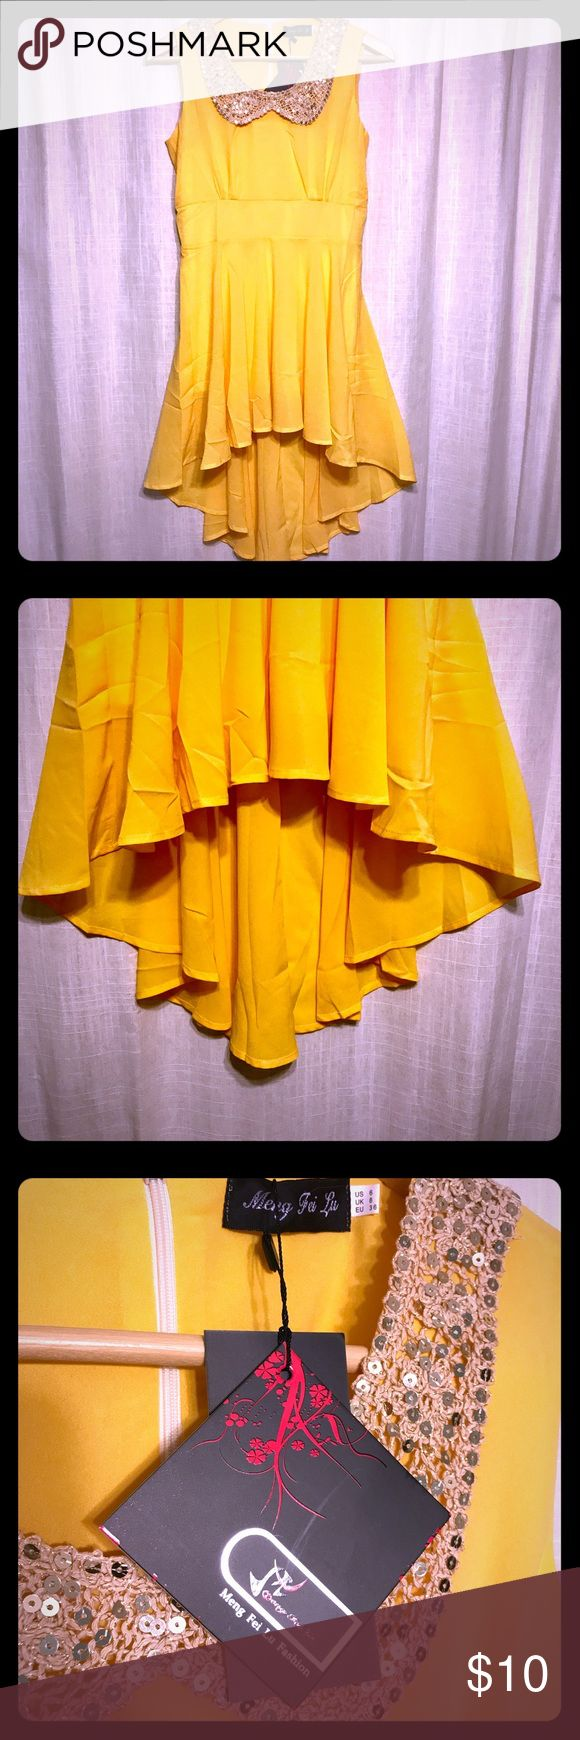 Yellow Dress with Sequin Collar. Asymmetrical Hem Sunny yellow dress with sparkly sequin collar. Purchased to use as Belle Costume. Never worn. New with tags. US 6 UK 8. Meng Fei Lu Dresses Asymmetrical